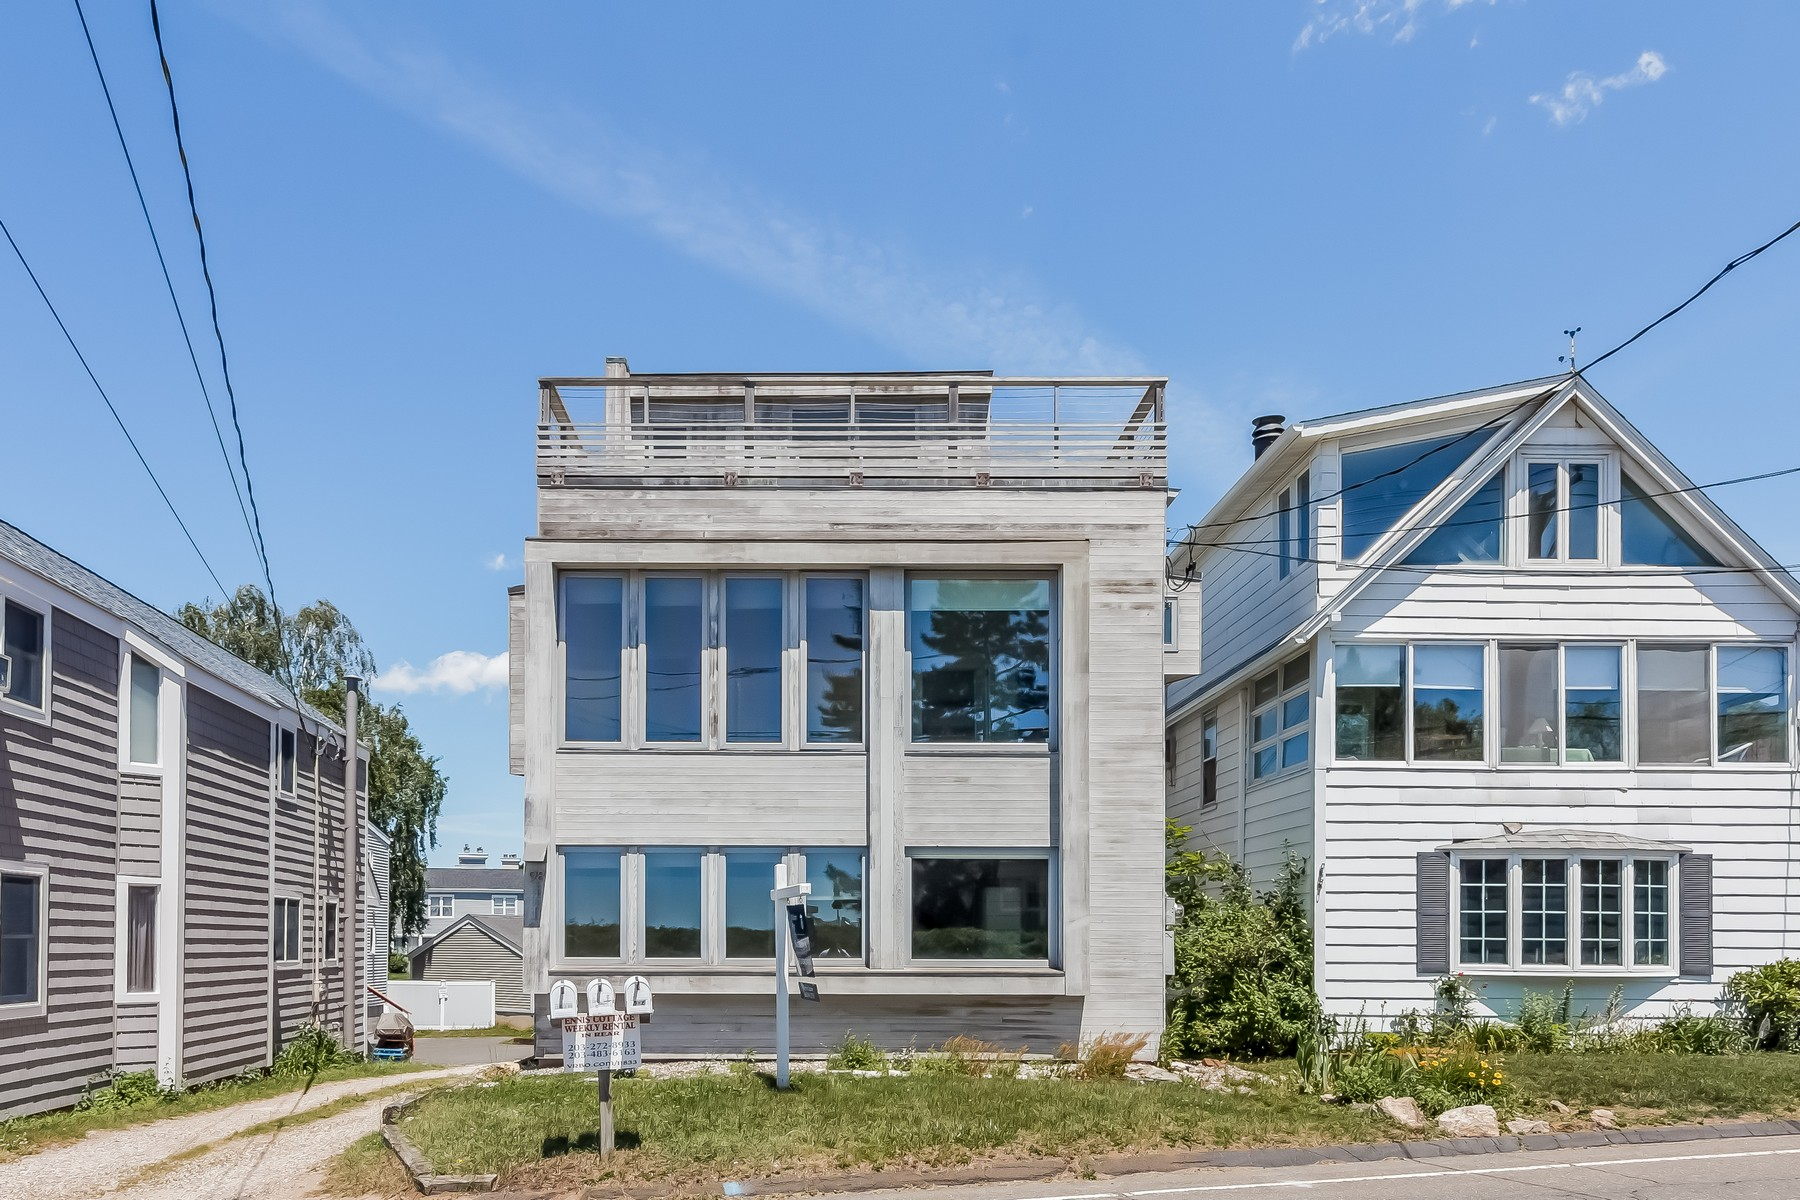 Single Family Home for Sale at Stunning Views 98 Limewood Ave Branford, Connecticut, 06405 United States